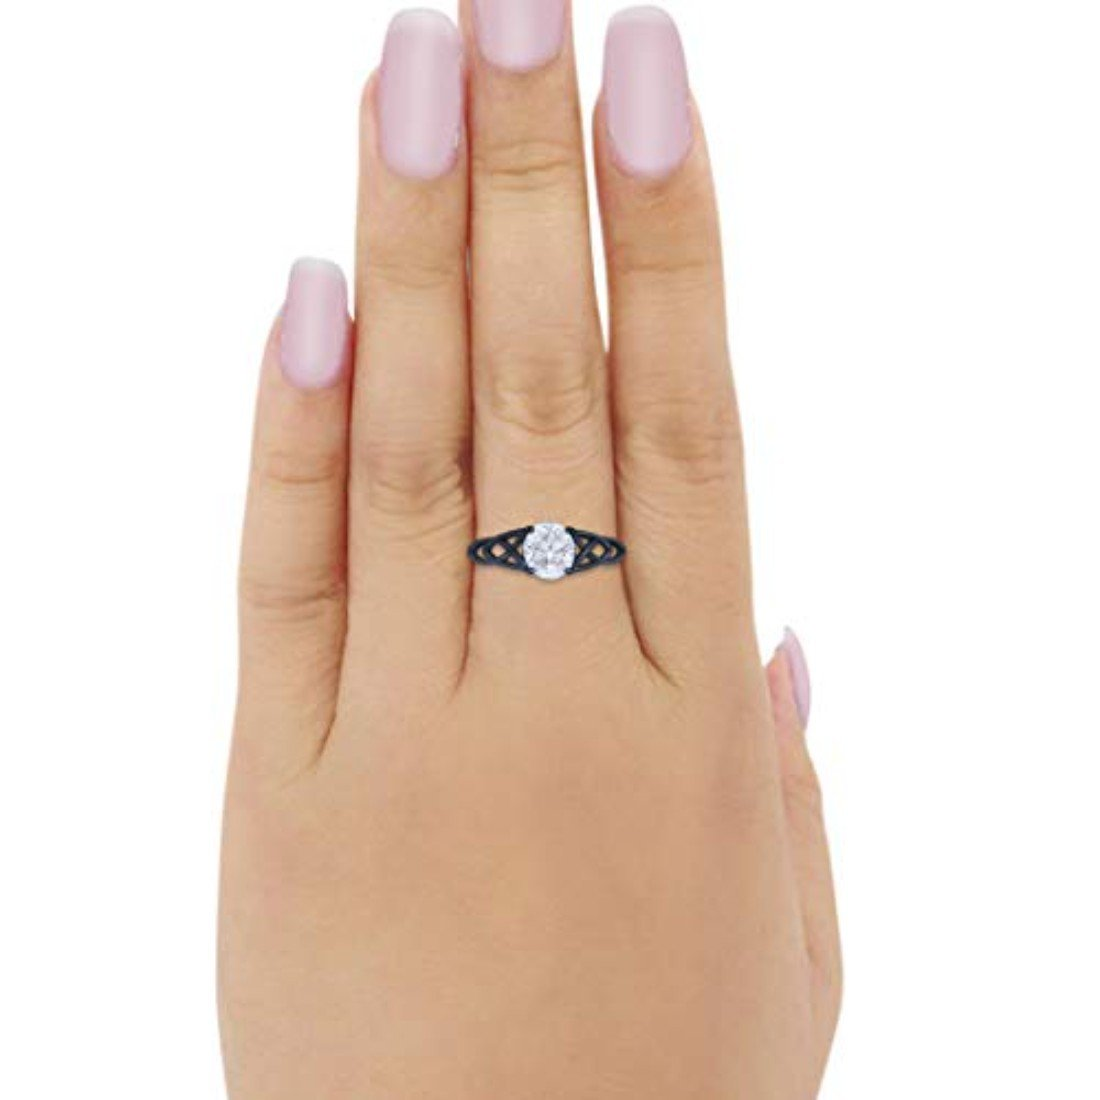 Art Deco Wedding Bridal Ring Simulated Cubic Zirconia 925 Sterling Silver